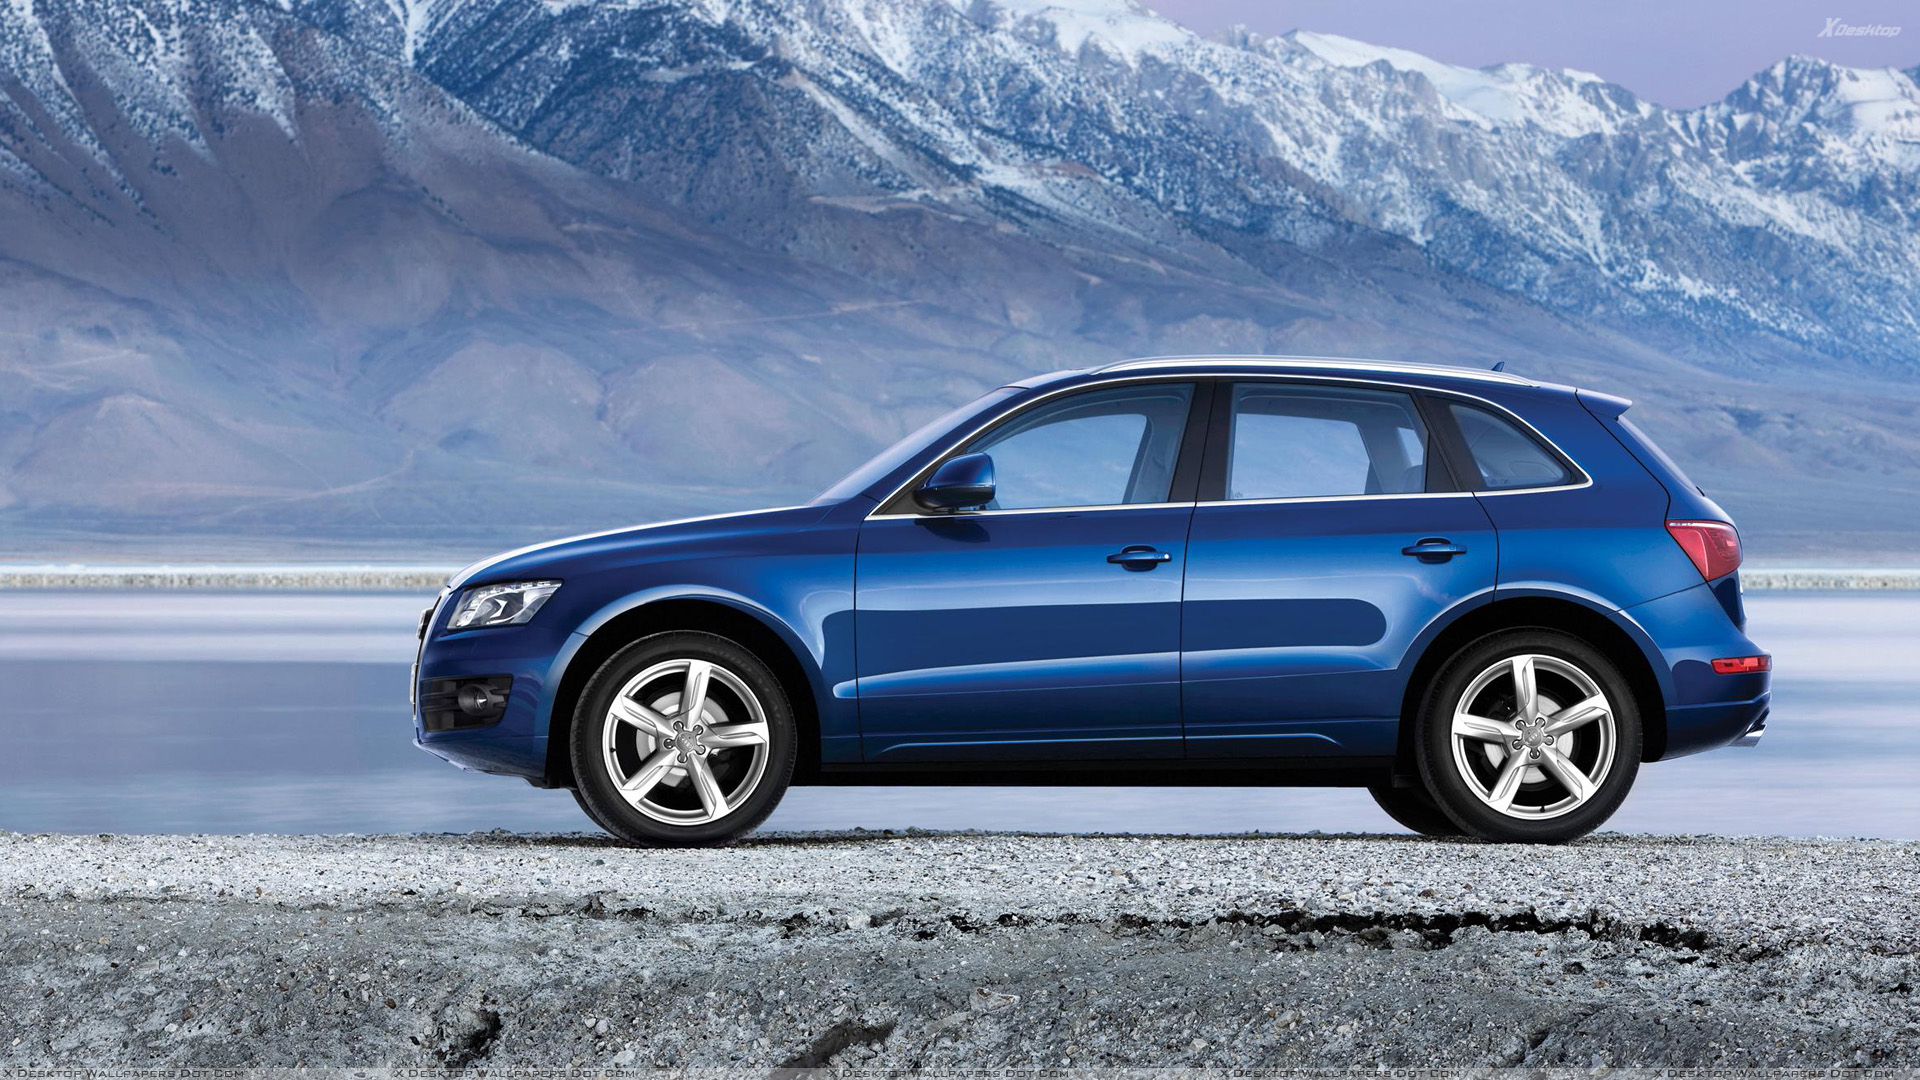 audi q5 wallpapers photos images in hd. Black Bedroom Furniture Sets. Home Design Ideas